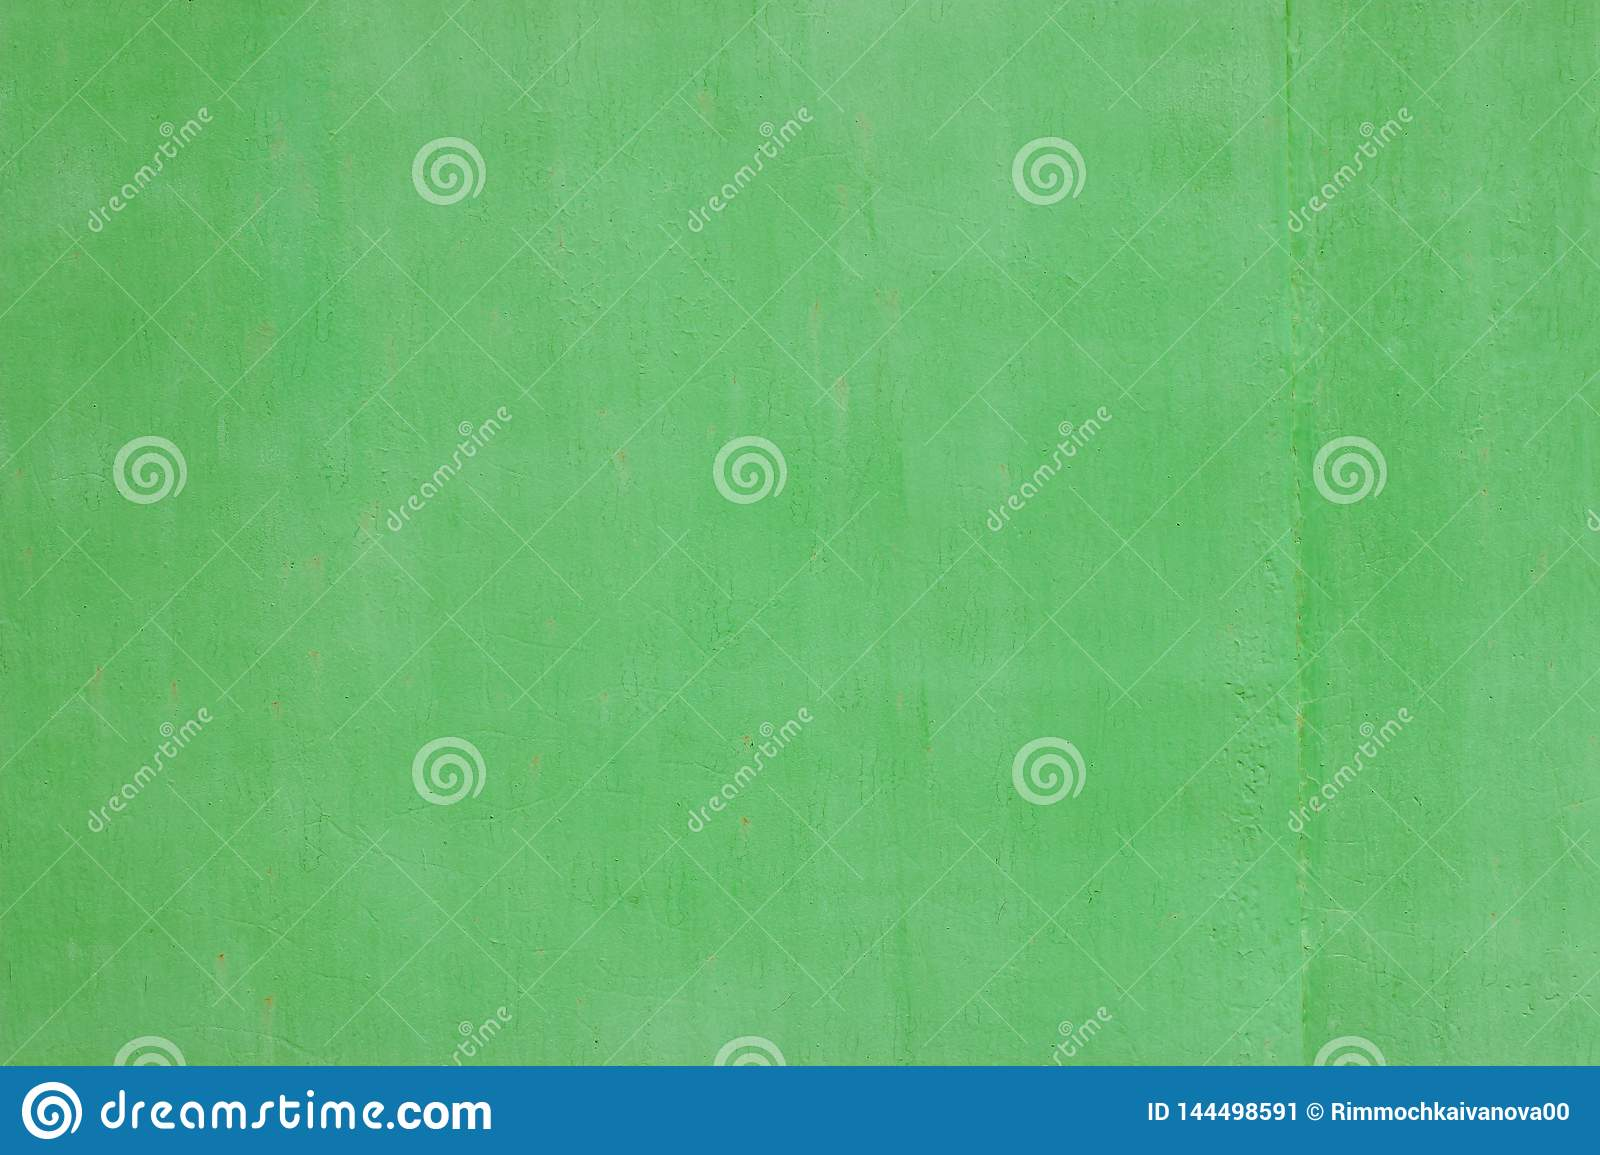 The texture of the wall painting in beautiful light green tones. Shot close up